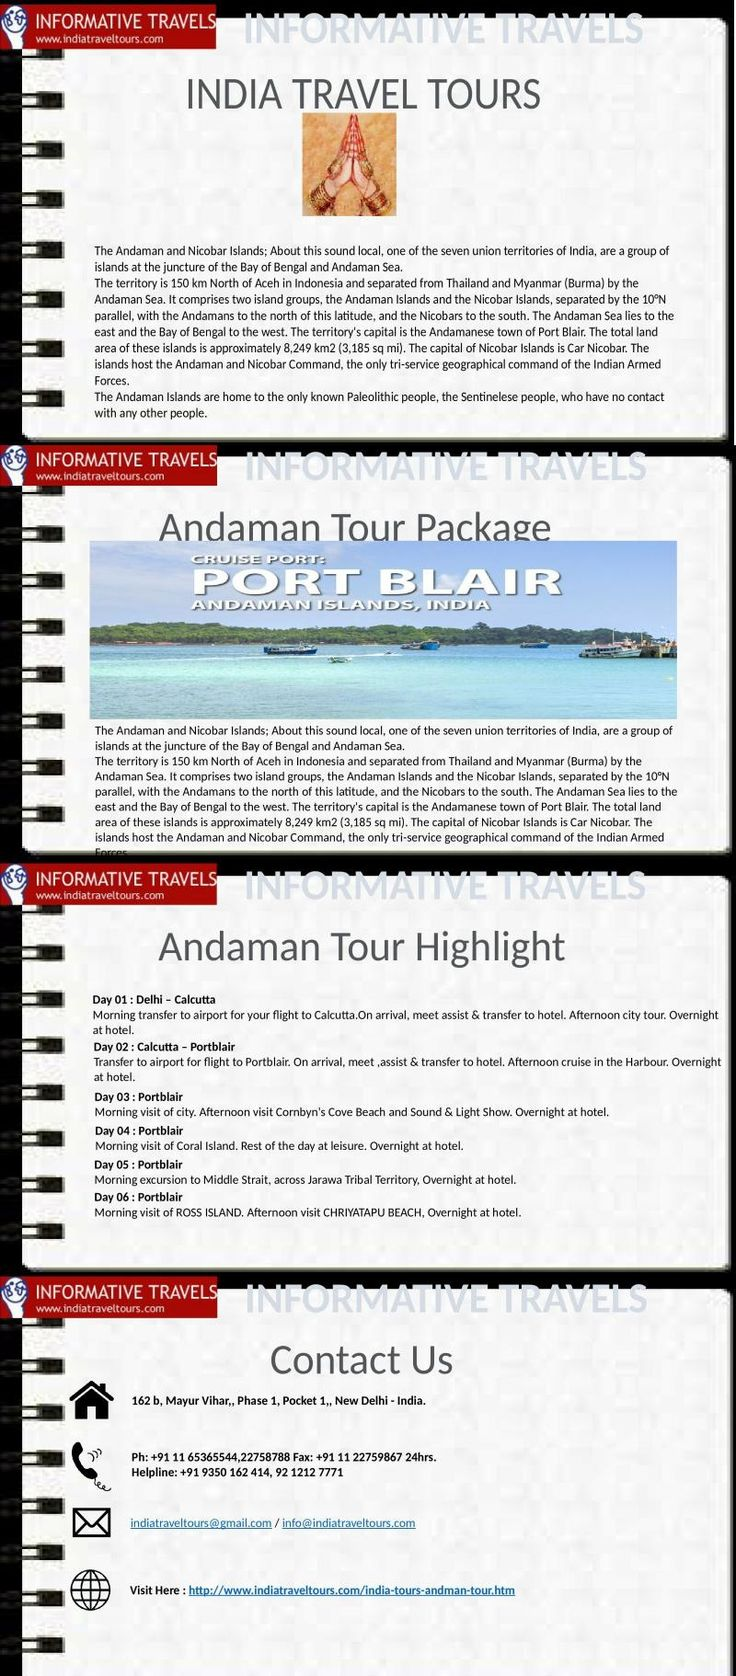 The Andaman and Nicobar Islands; About this sound local, one of the seven union territories of India, are a group of islands at the juncture of the Bay of Bengal and Andaman Sea. The territory is 150 km North of Aceh in Indonesia and separated from Thailand and Myanmar (Burma) by the Andaman Sea. It comprises two island groups, the Andaman Islands and the Nicobar Islands, separated by the 10°N parallel, with the Andamans to the north of this latitude, and the Nicobars to the south. The…